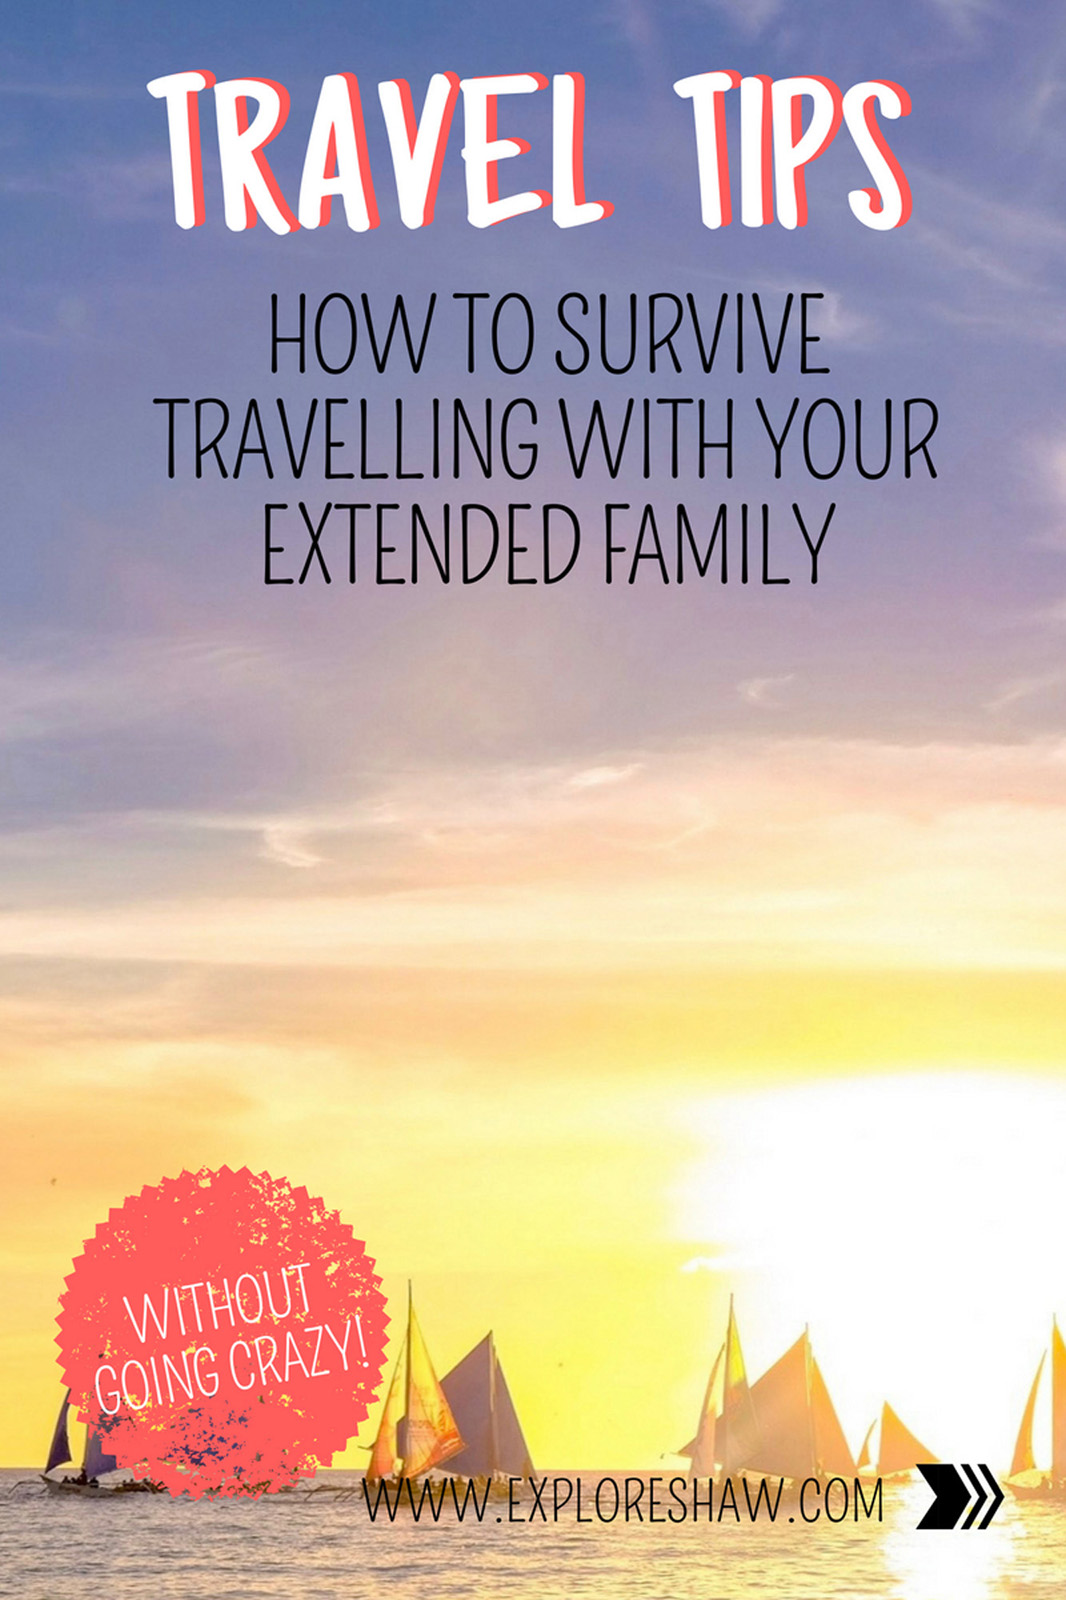 A guide to help you survive travelling with your extended family on an international holiday - especially if you haven't travelled together before!